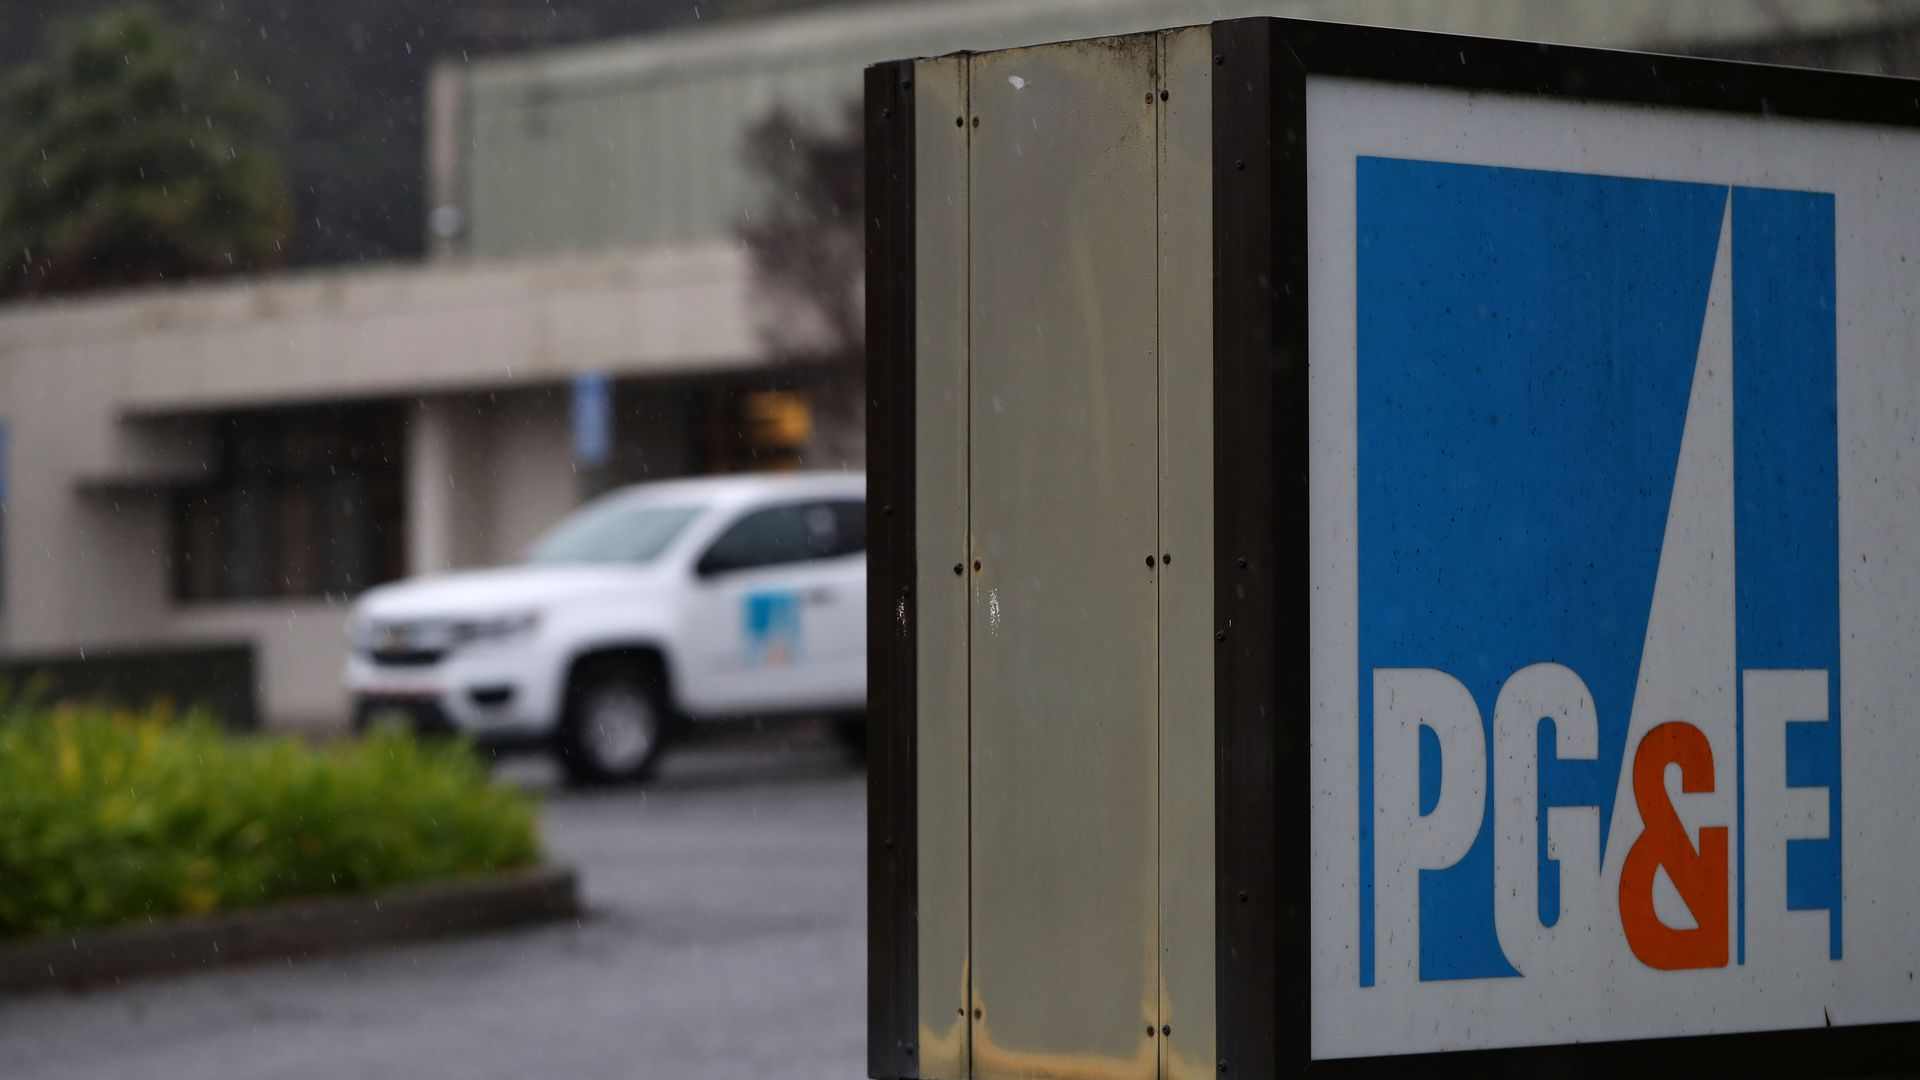 The Pacific Gas & Electric (PG&E) logo is displayed on a sign in front of the PG&E Service Center on January 15, 2019 in San Rafael, California.